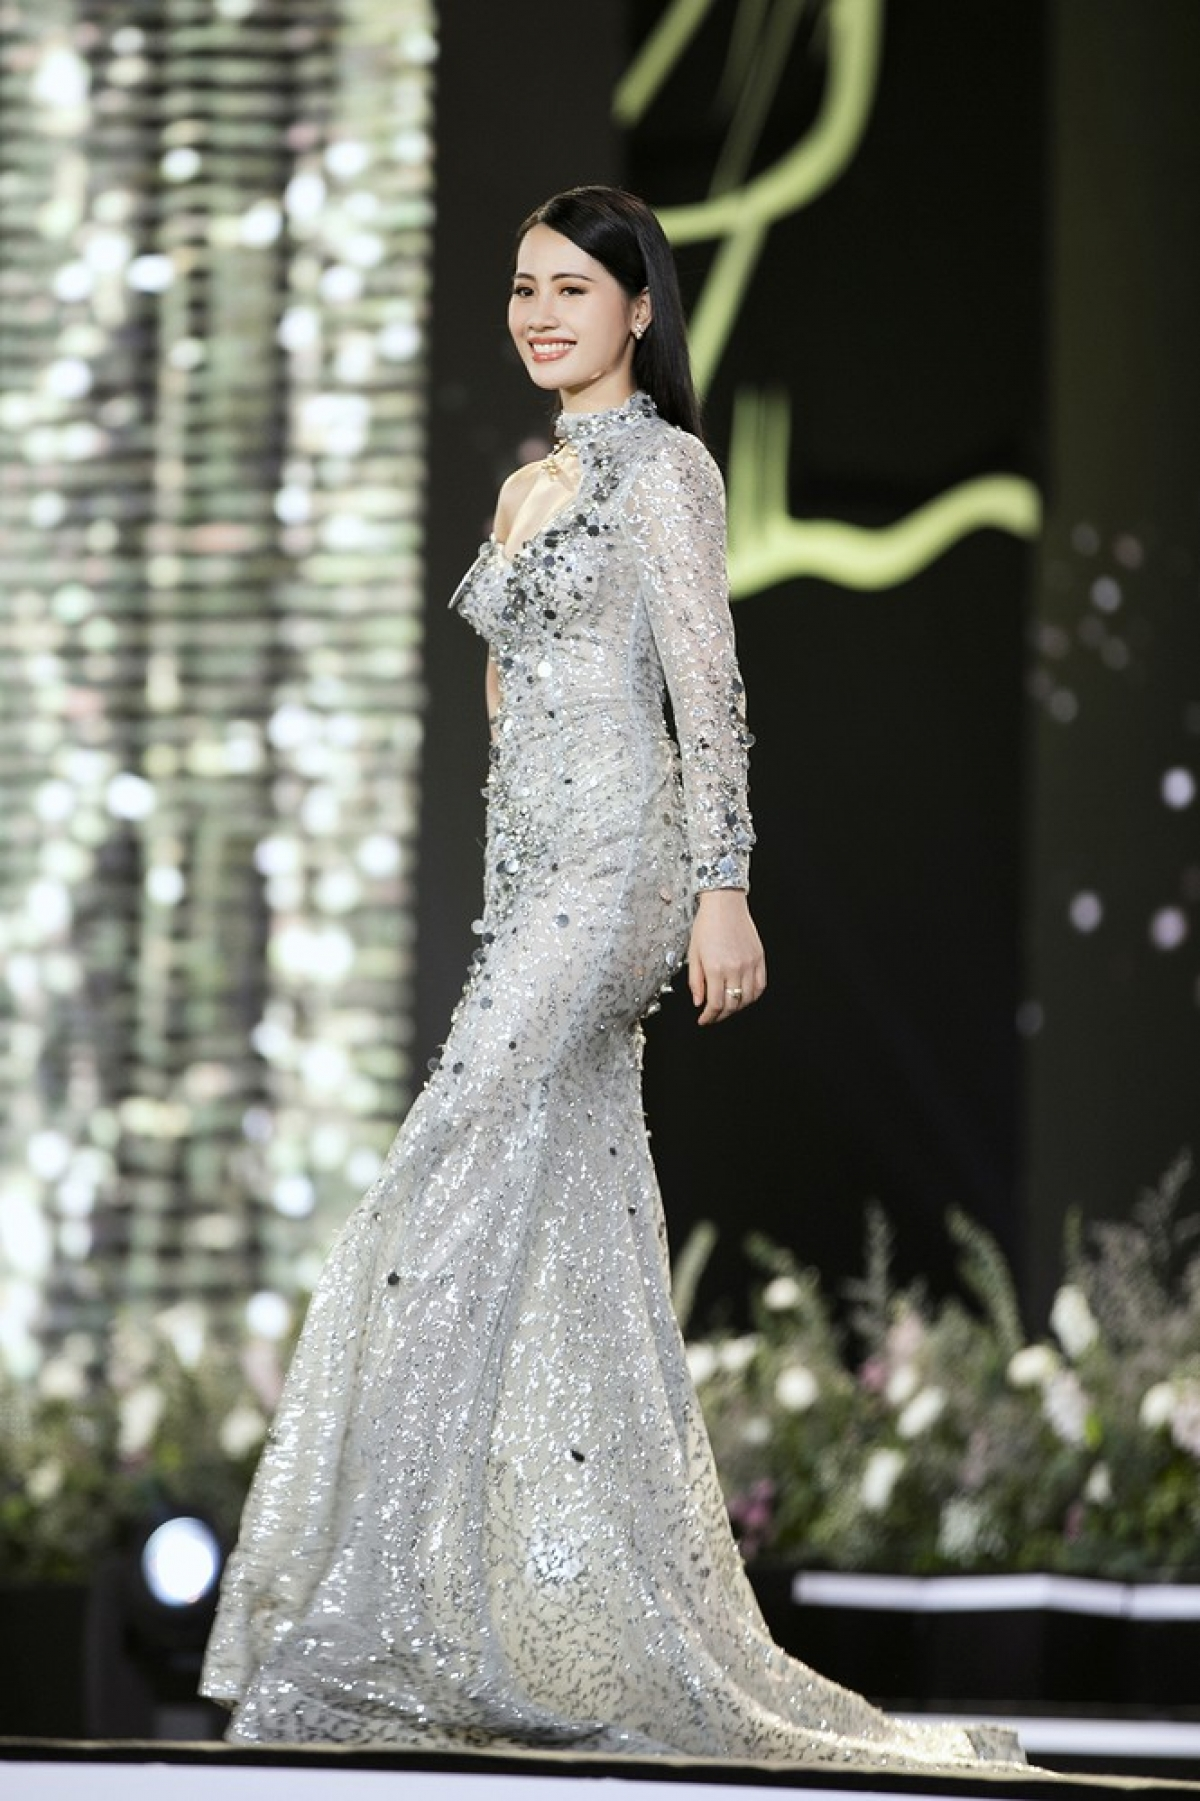 Nguyen Thi Thanh Thuy from Hai Phong city is 1.67 metres tall and measures 82-61–93.